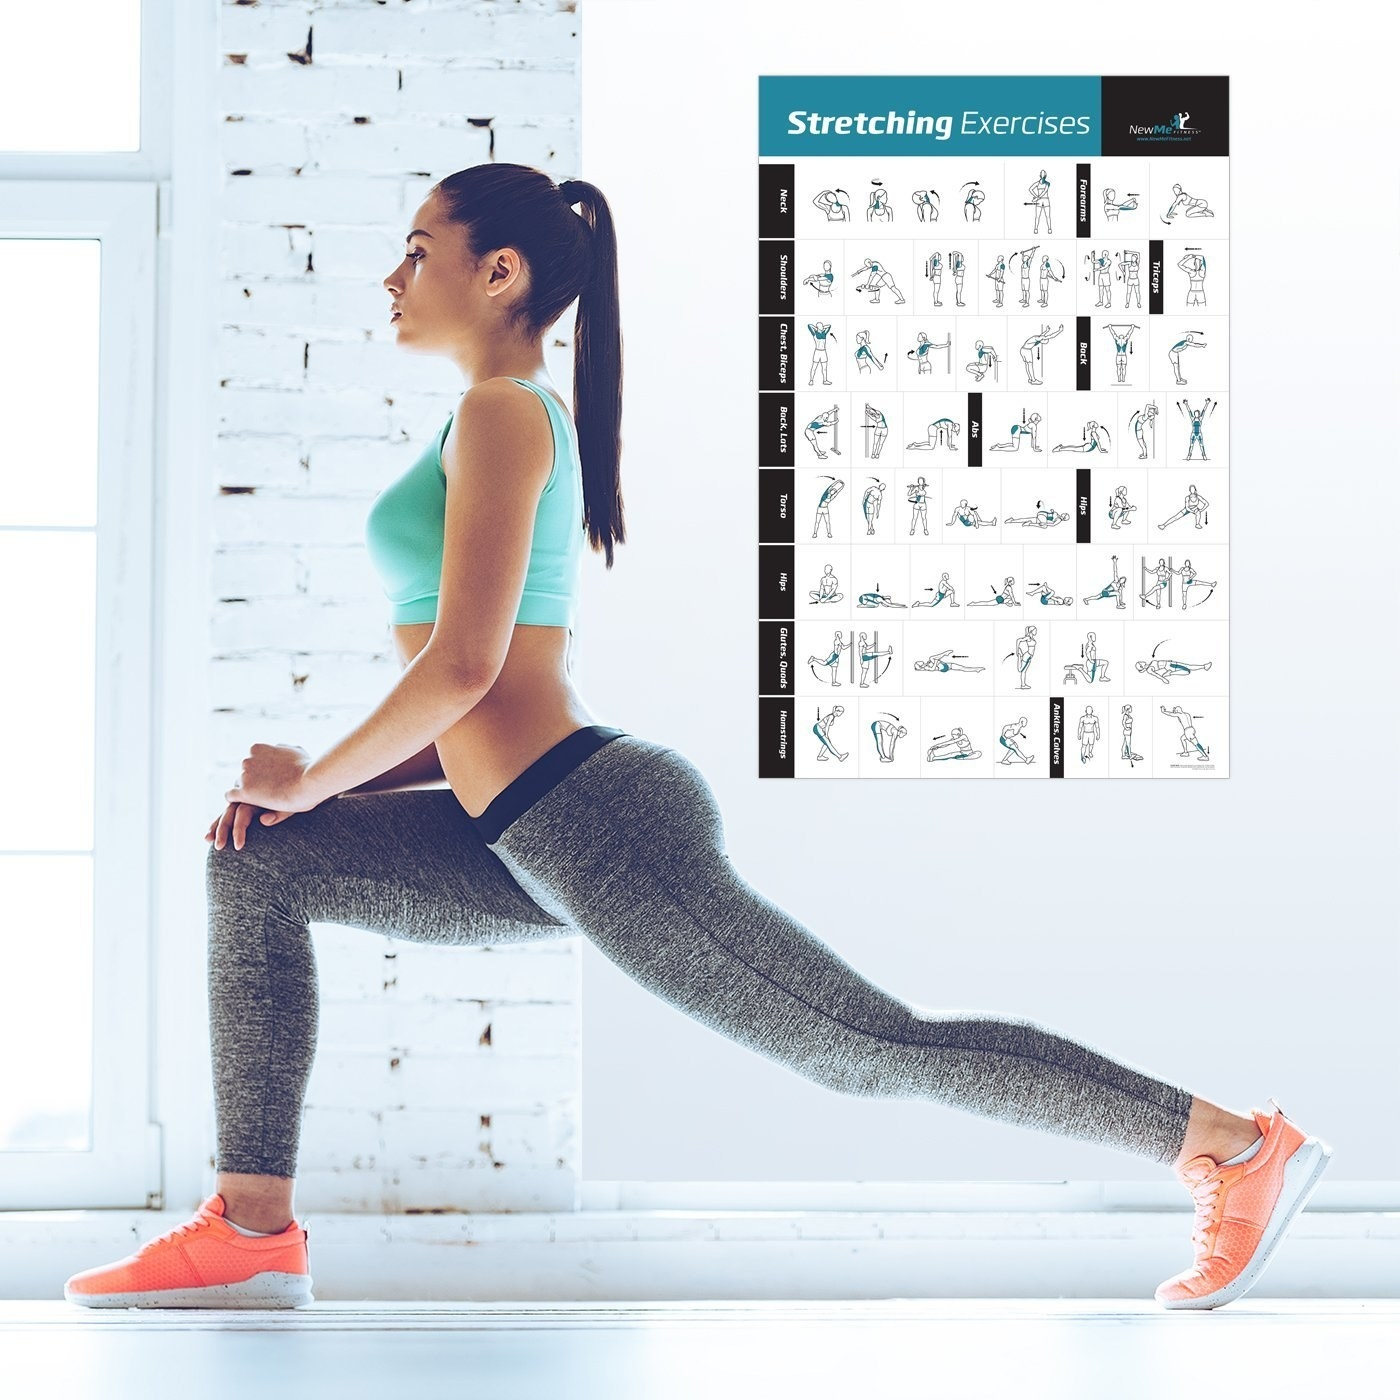 a model stretching next to the poster of stretch ideas